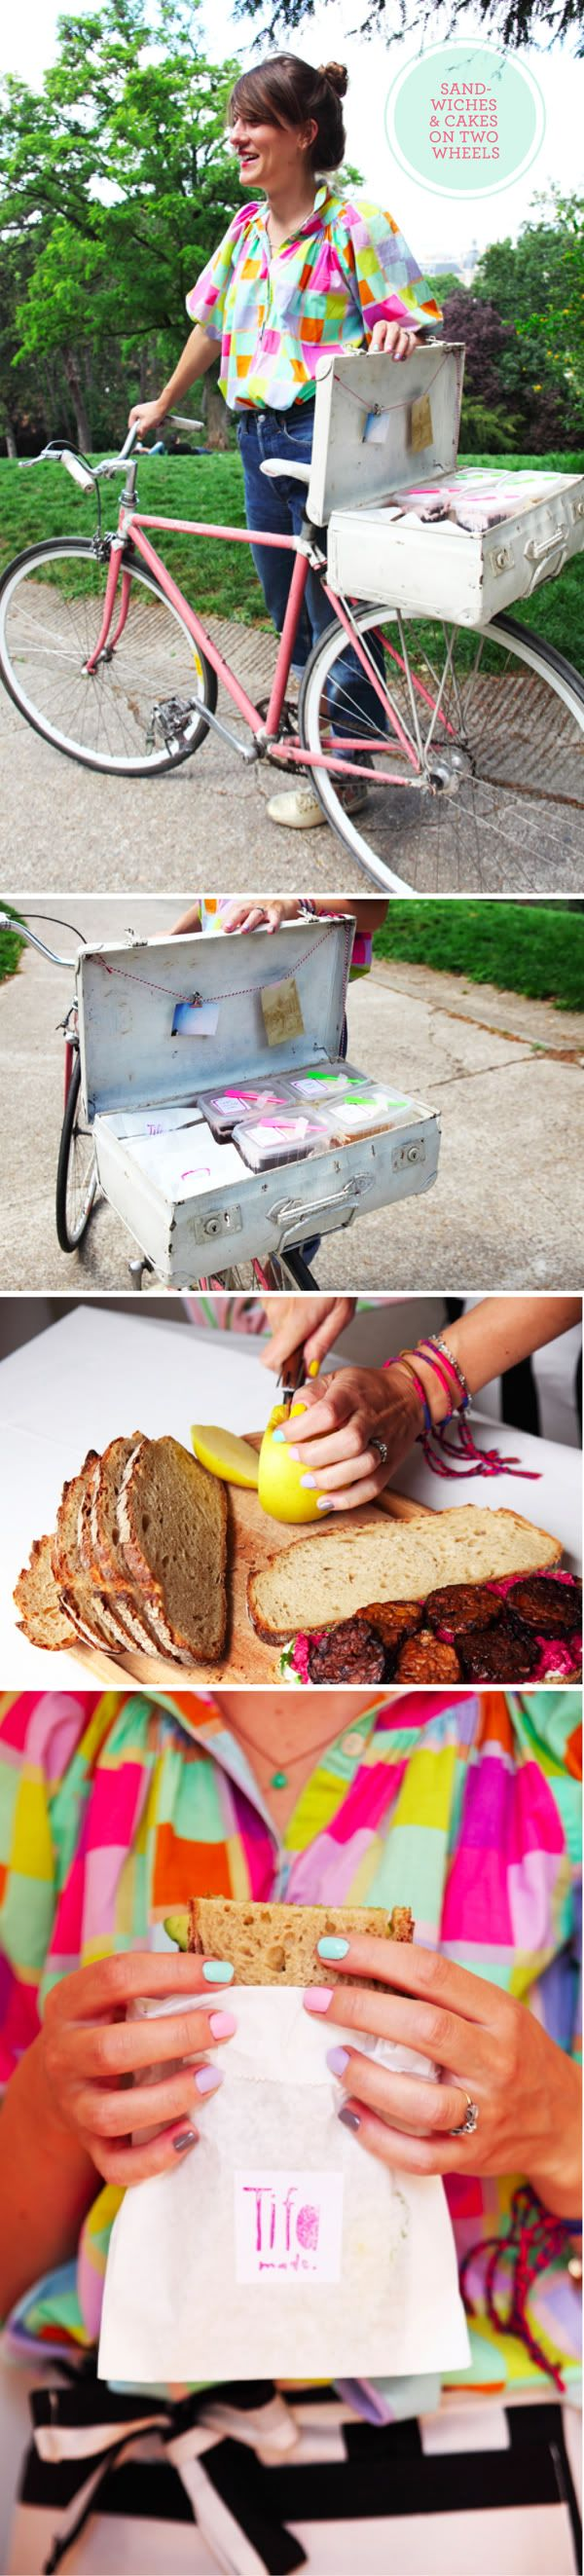 How cute is this?? ...and colorful!??    Tiffany and her pink bike deliver sandwiches and cakes to the hungry people of Paris.  Upon arrival, the sandwiches and cakes are presented in a lovely old suitcase!!